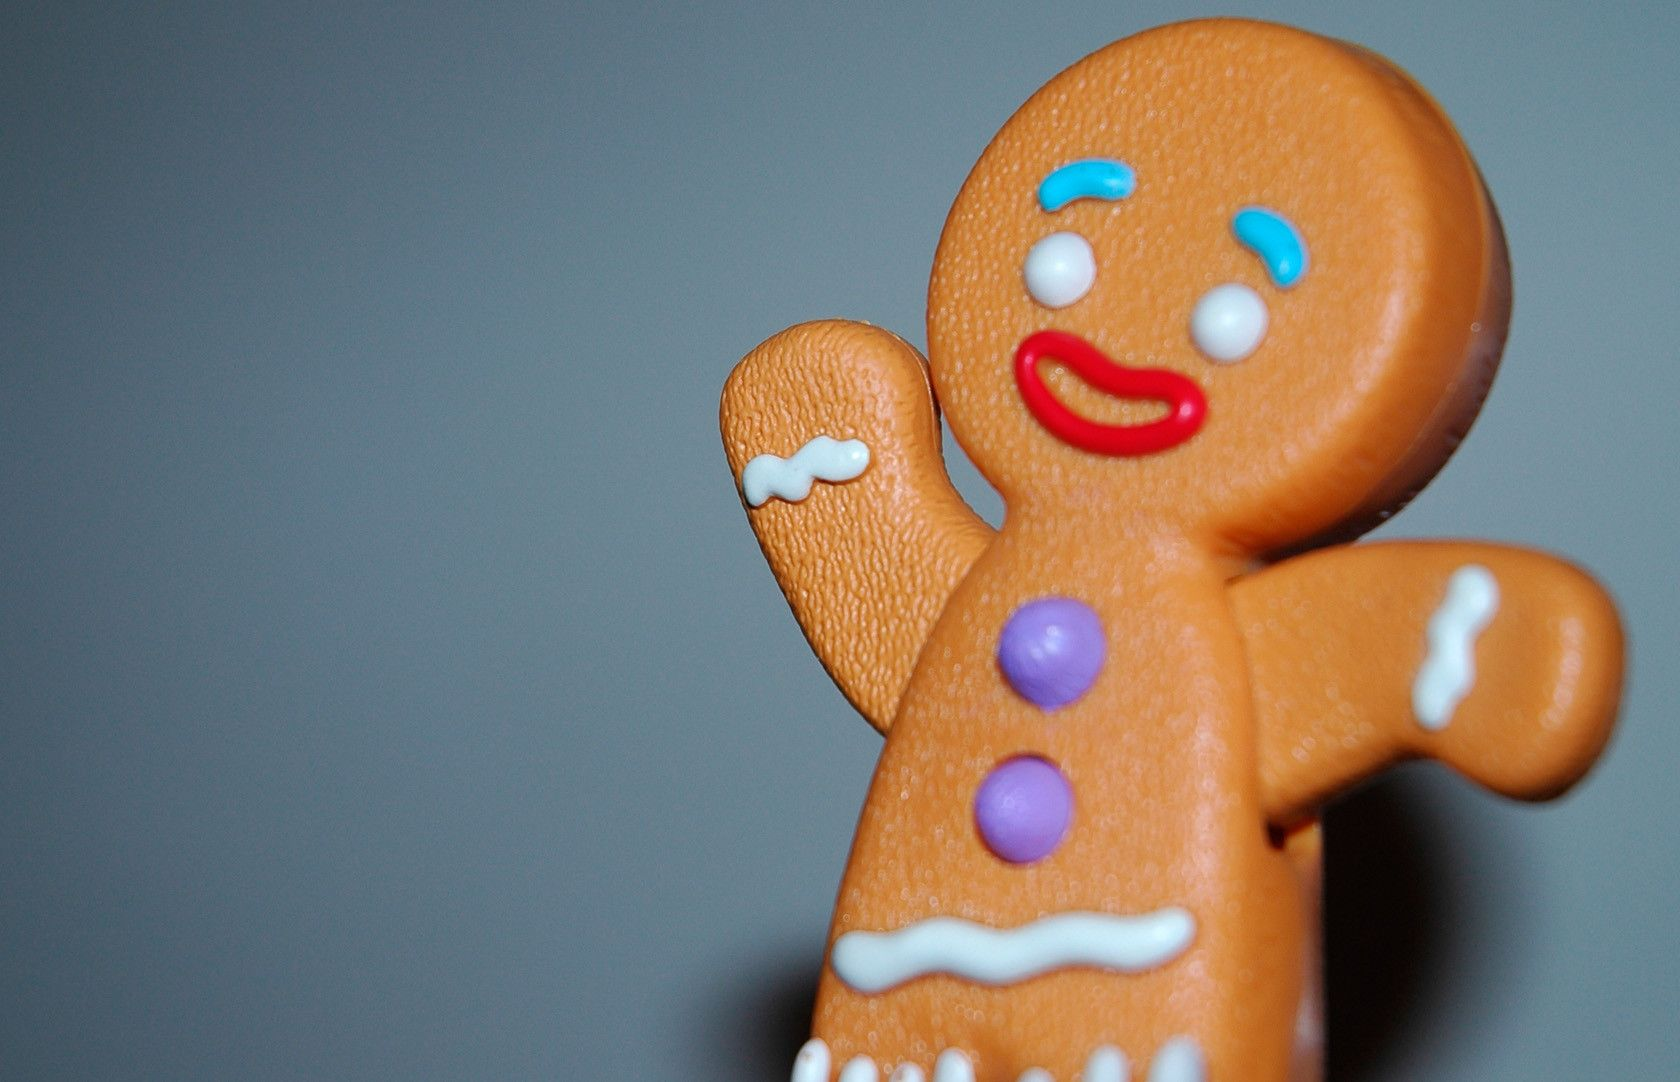 Gingerbread Man Wallpaper